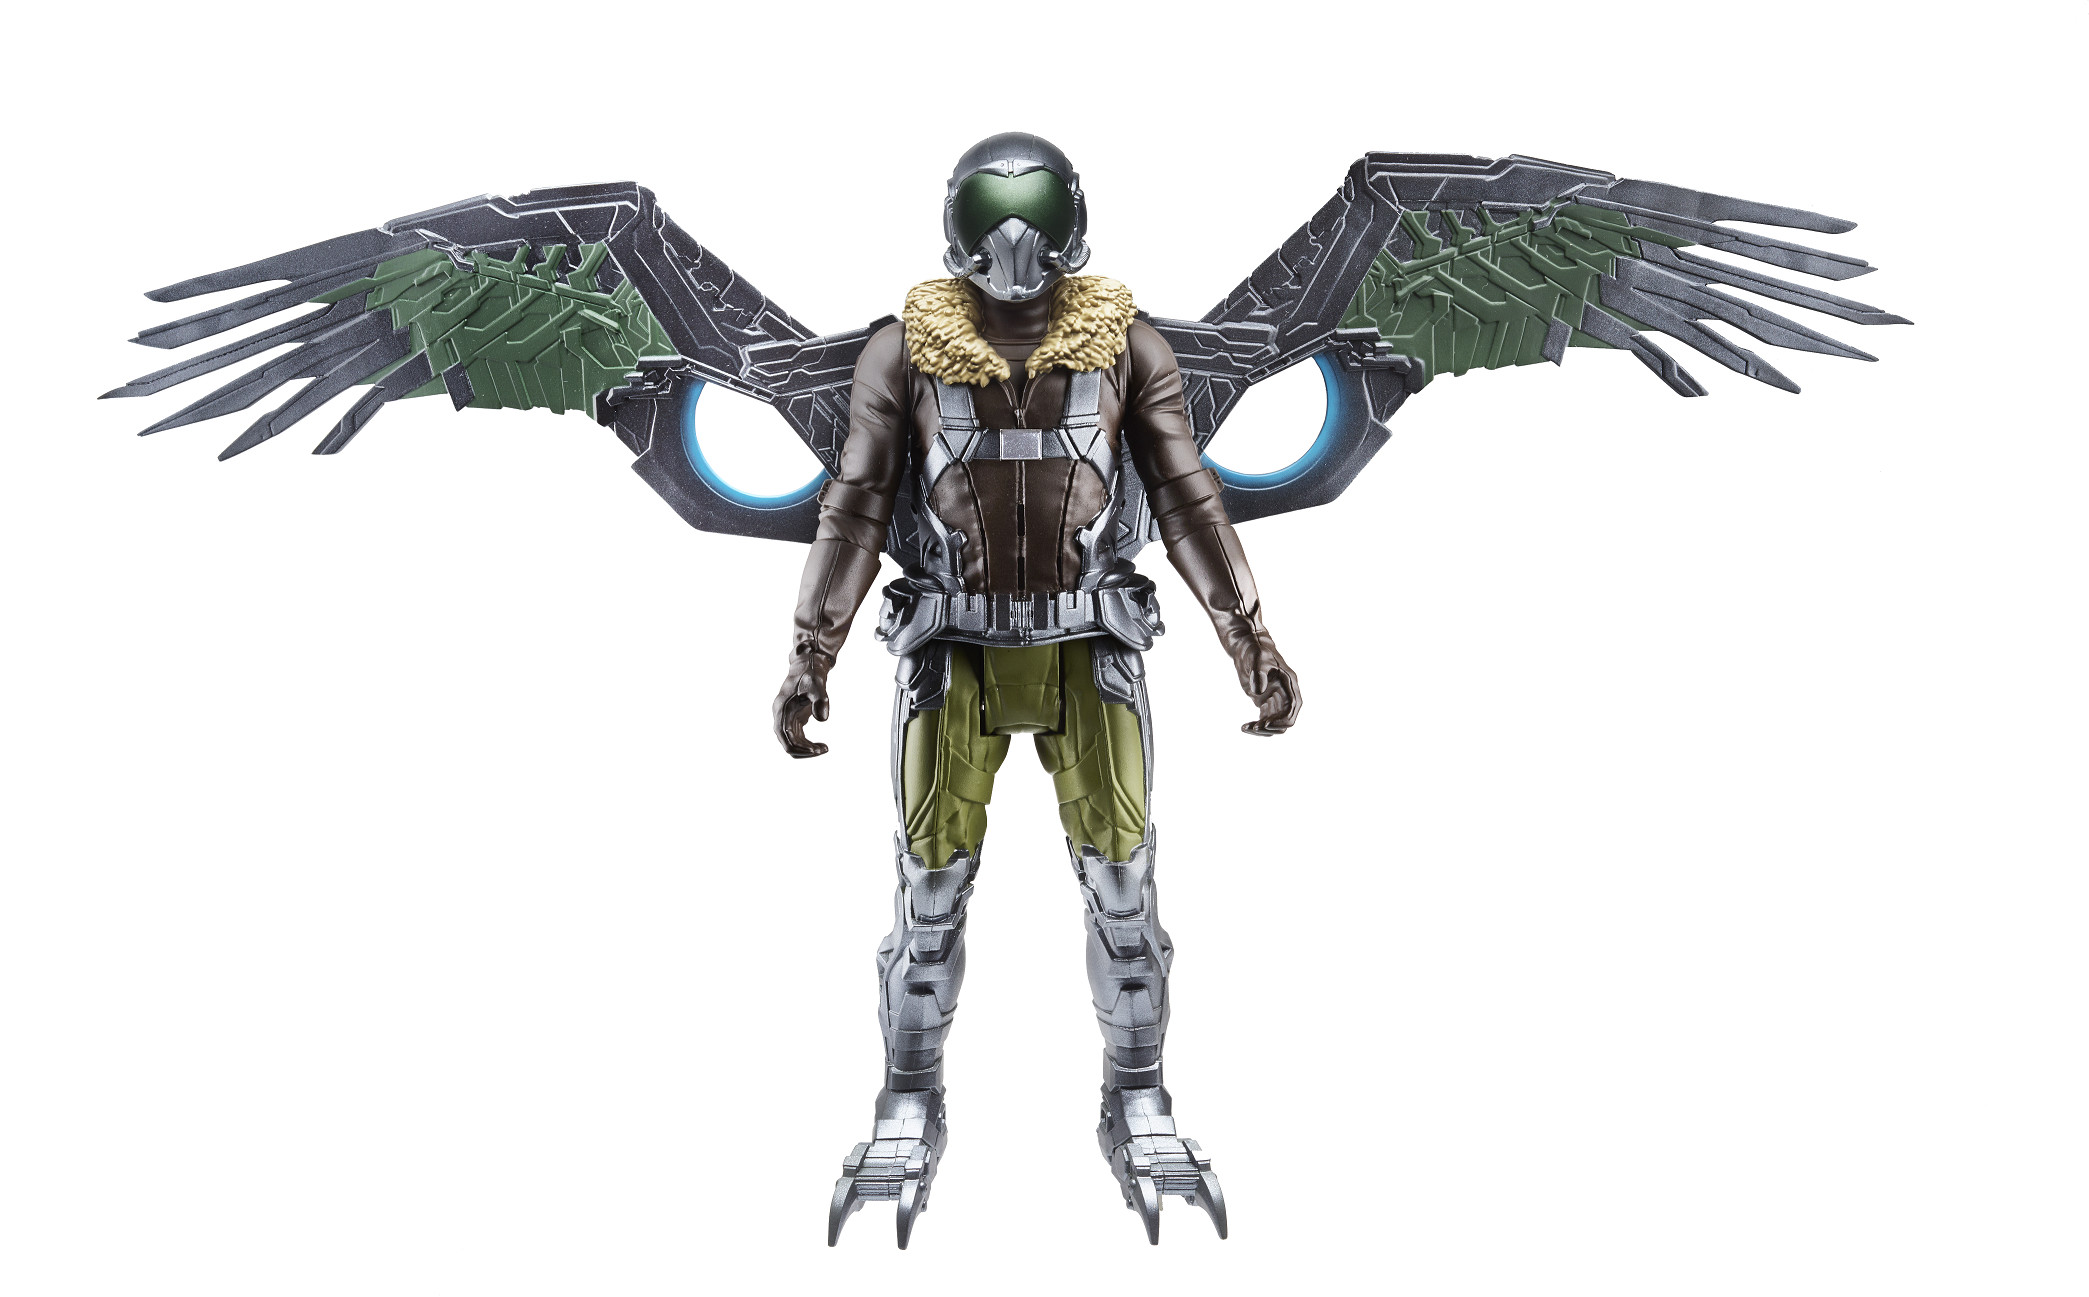 SPIDER-MAN HOMECOMING ELECTRONIC MARVEL'S VULTURE Figure